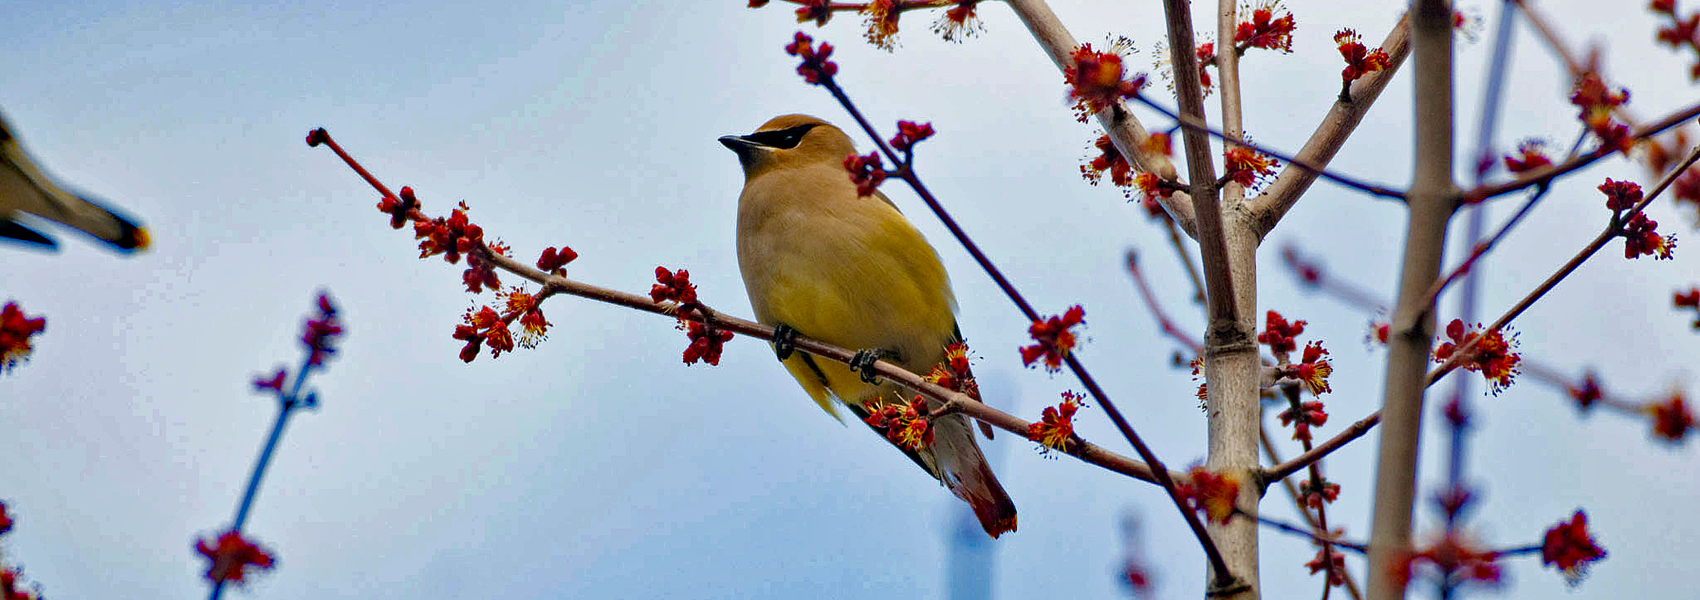 A cedar waxwing sits on a tree branch